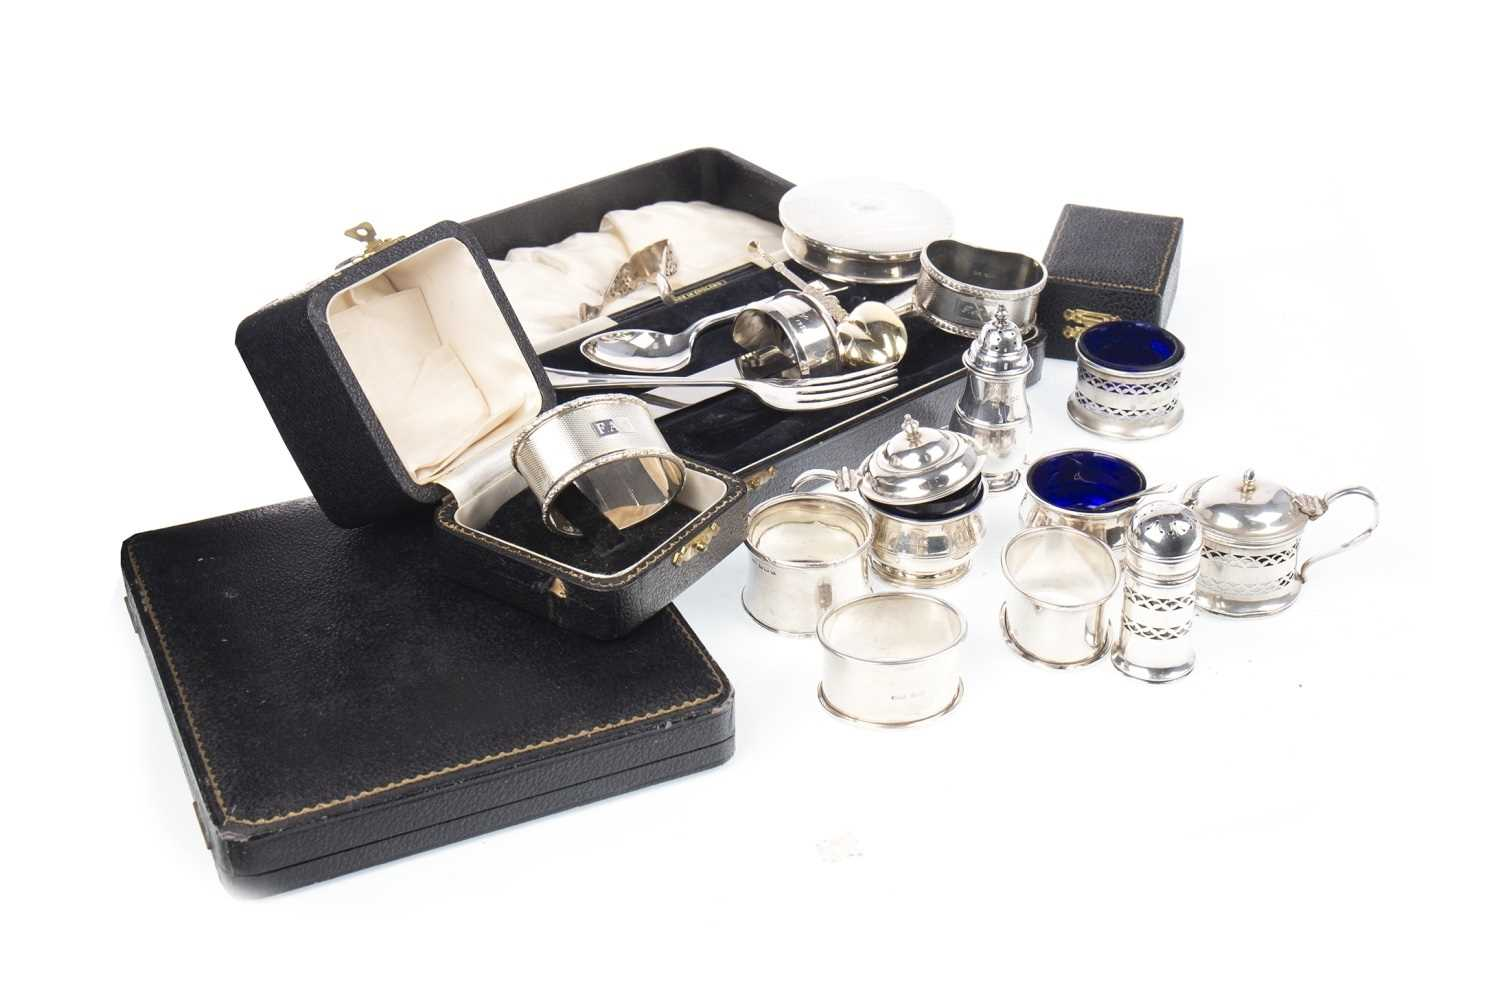 Lot 889 - A LOT OF SILVER CRUETS ALONG WITH FLATWARE AND CASED PRESENTATION SETS